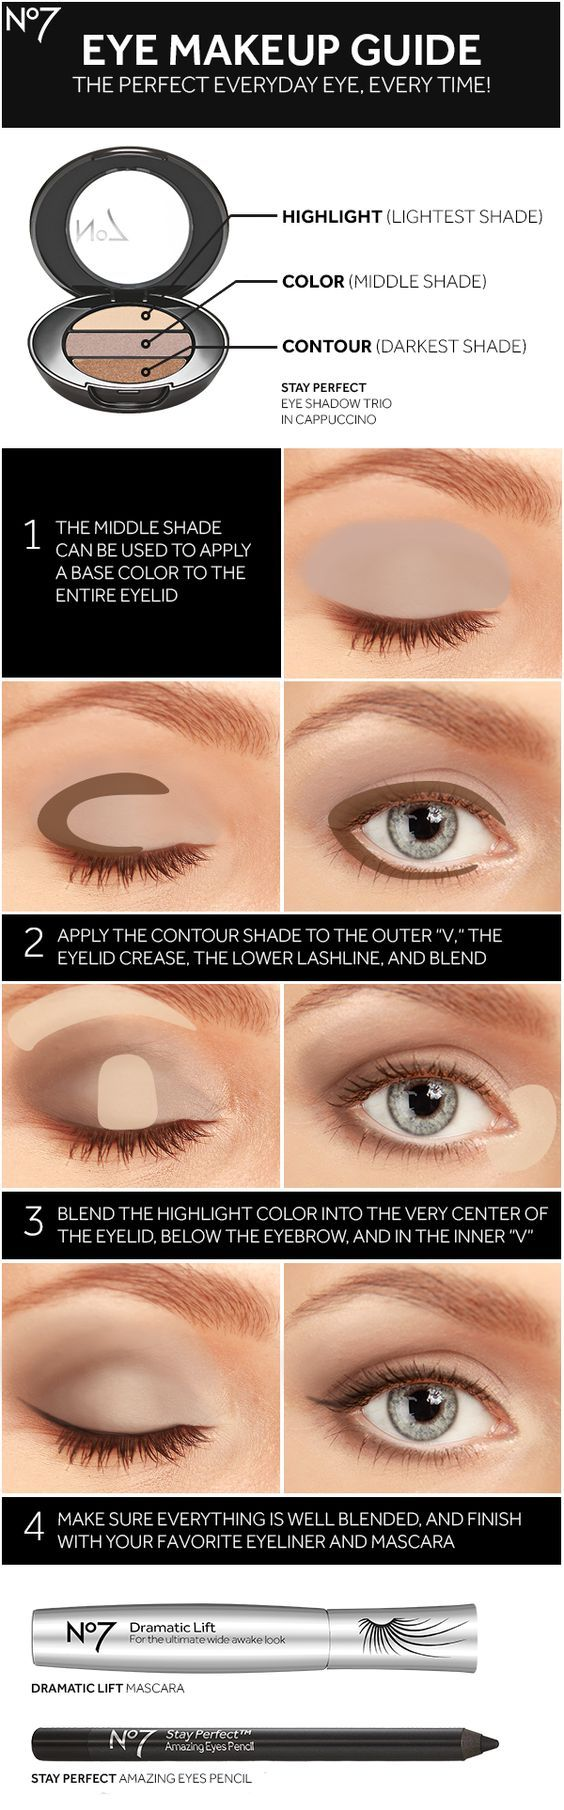 How to step by step eye makeup tutorials and guides for beginners how to step by step eye makeup tutorials and guides for beginners glam makeup pinterest eye makeup tutorials makeup and tutorials ccuart Gallery